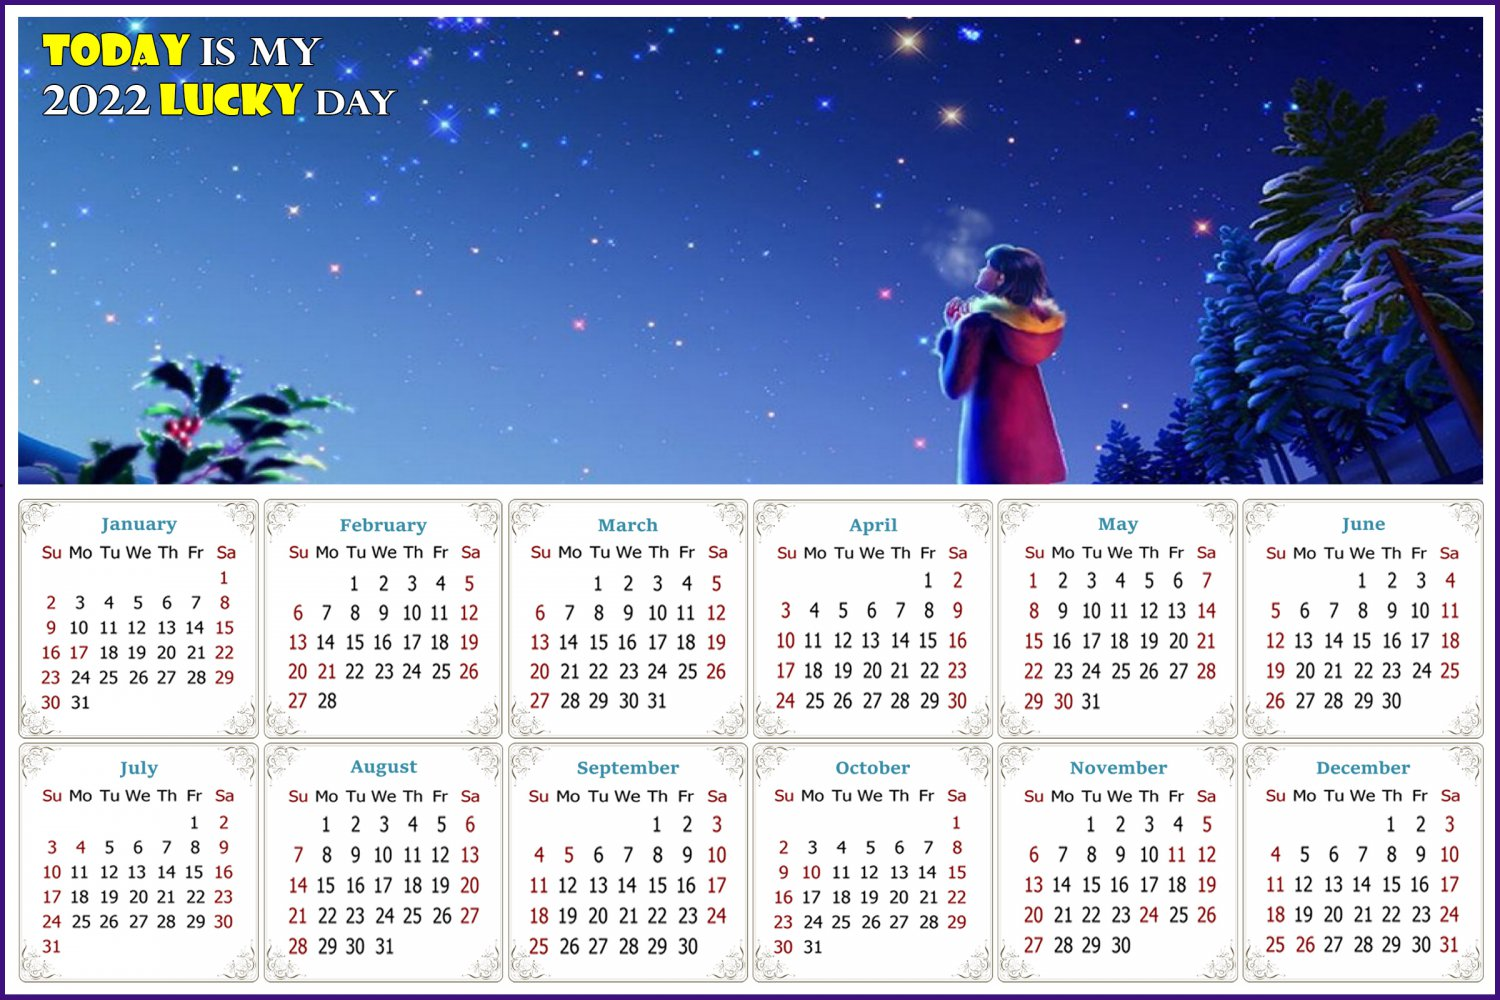 2022 Magnetic Calendar - Calendar Magnets - Today is my Lucky Day - Edition #28